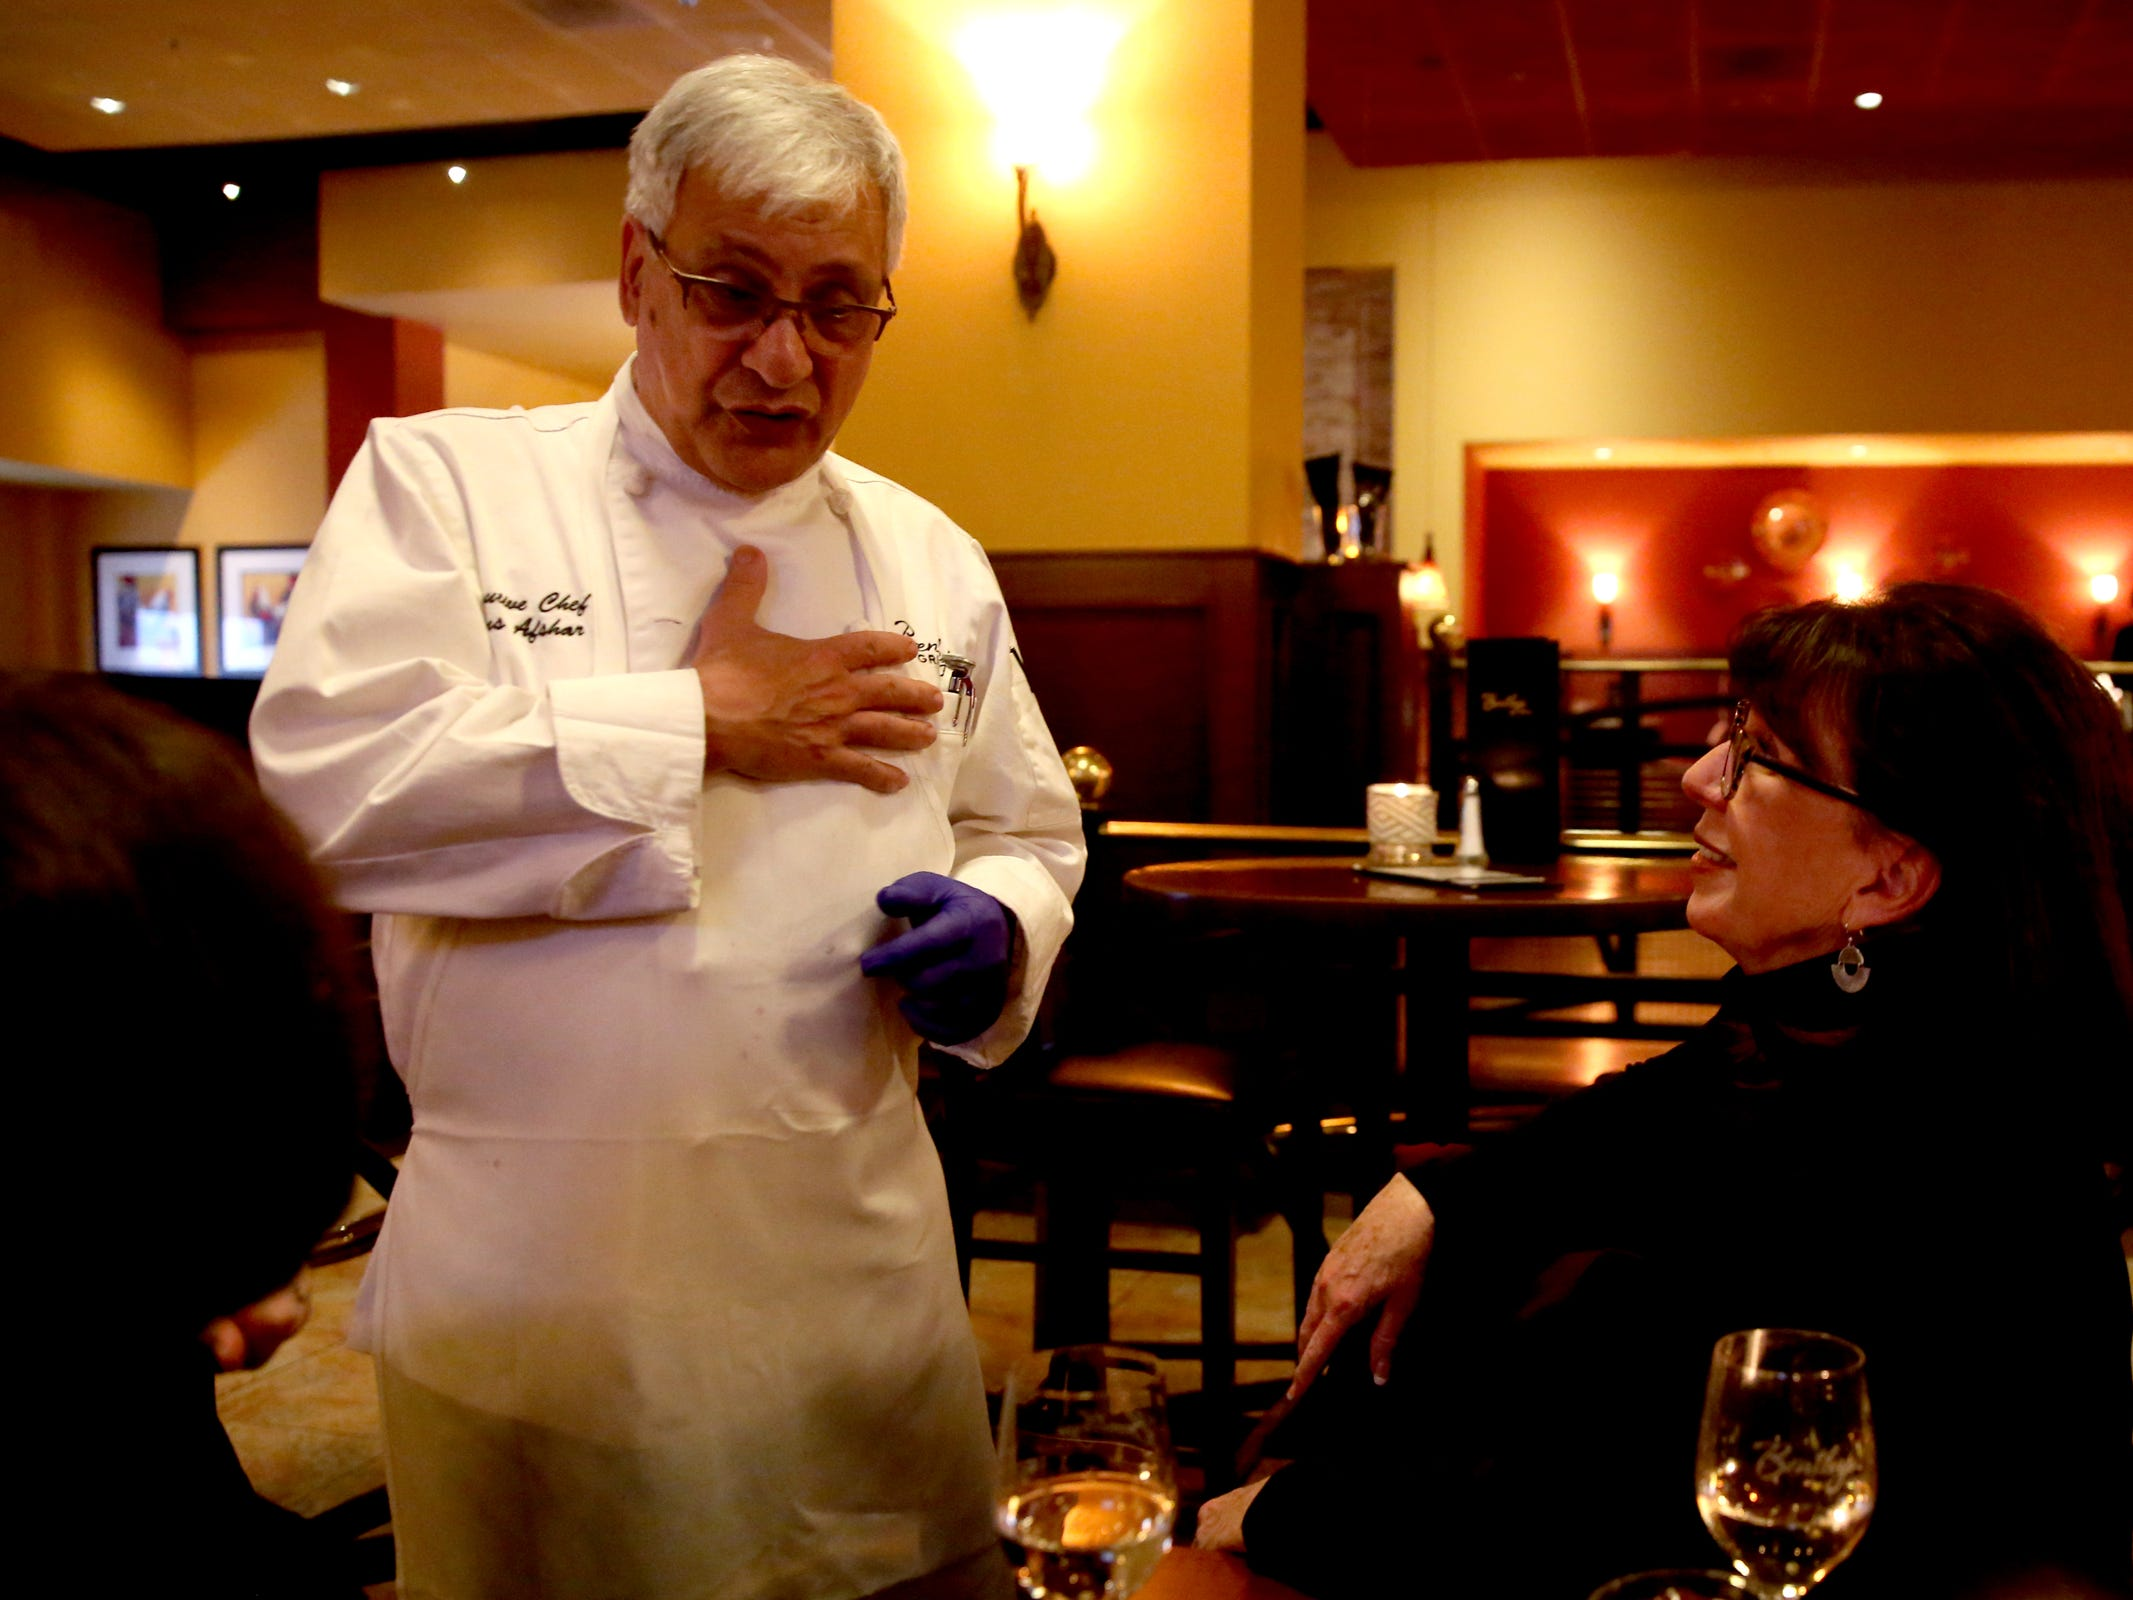 Executive chef Hans Afshar talks with diners Barbara Weber, left, and Linda Menleveld, both of Salem, at Bentley's Grill in Salem on Friday, Feb. 15, 2019.